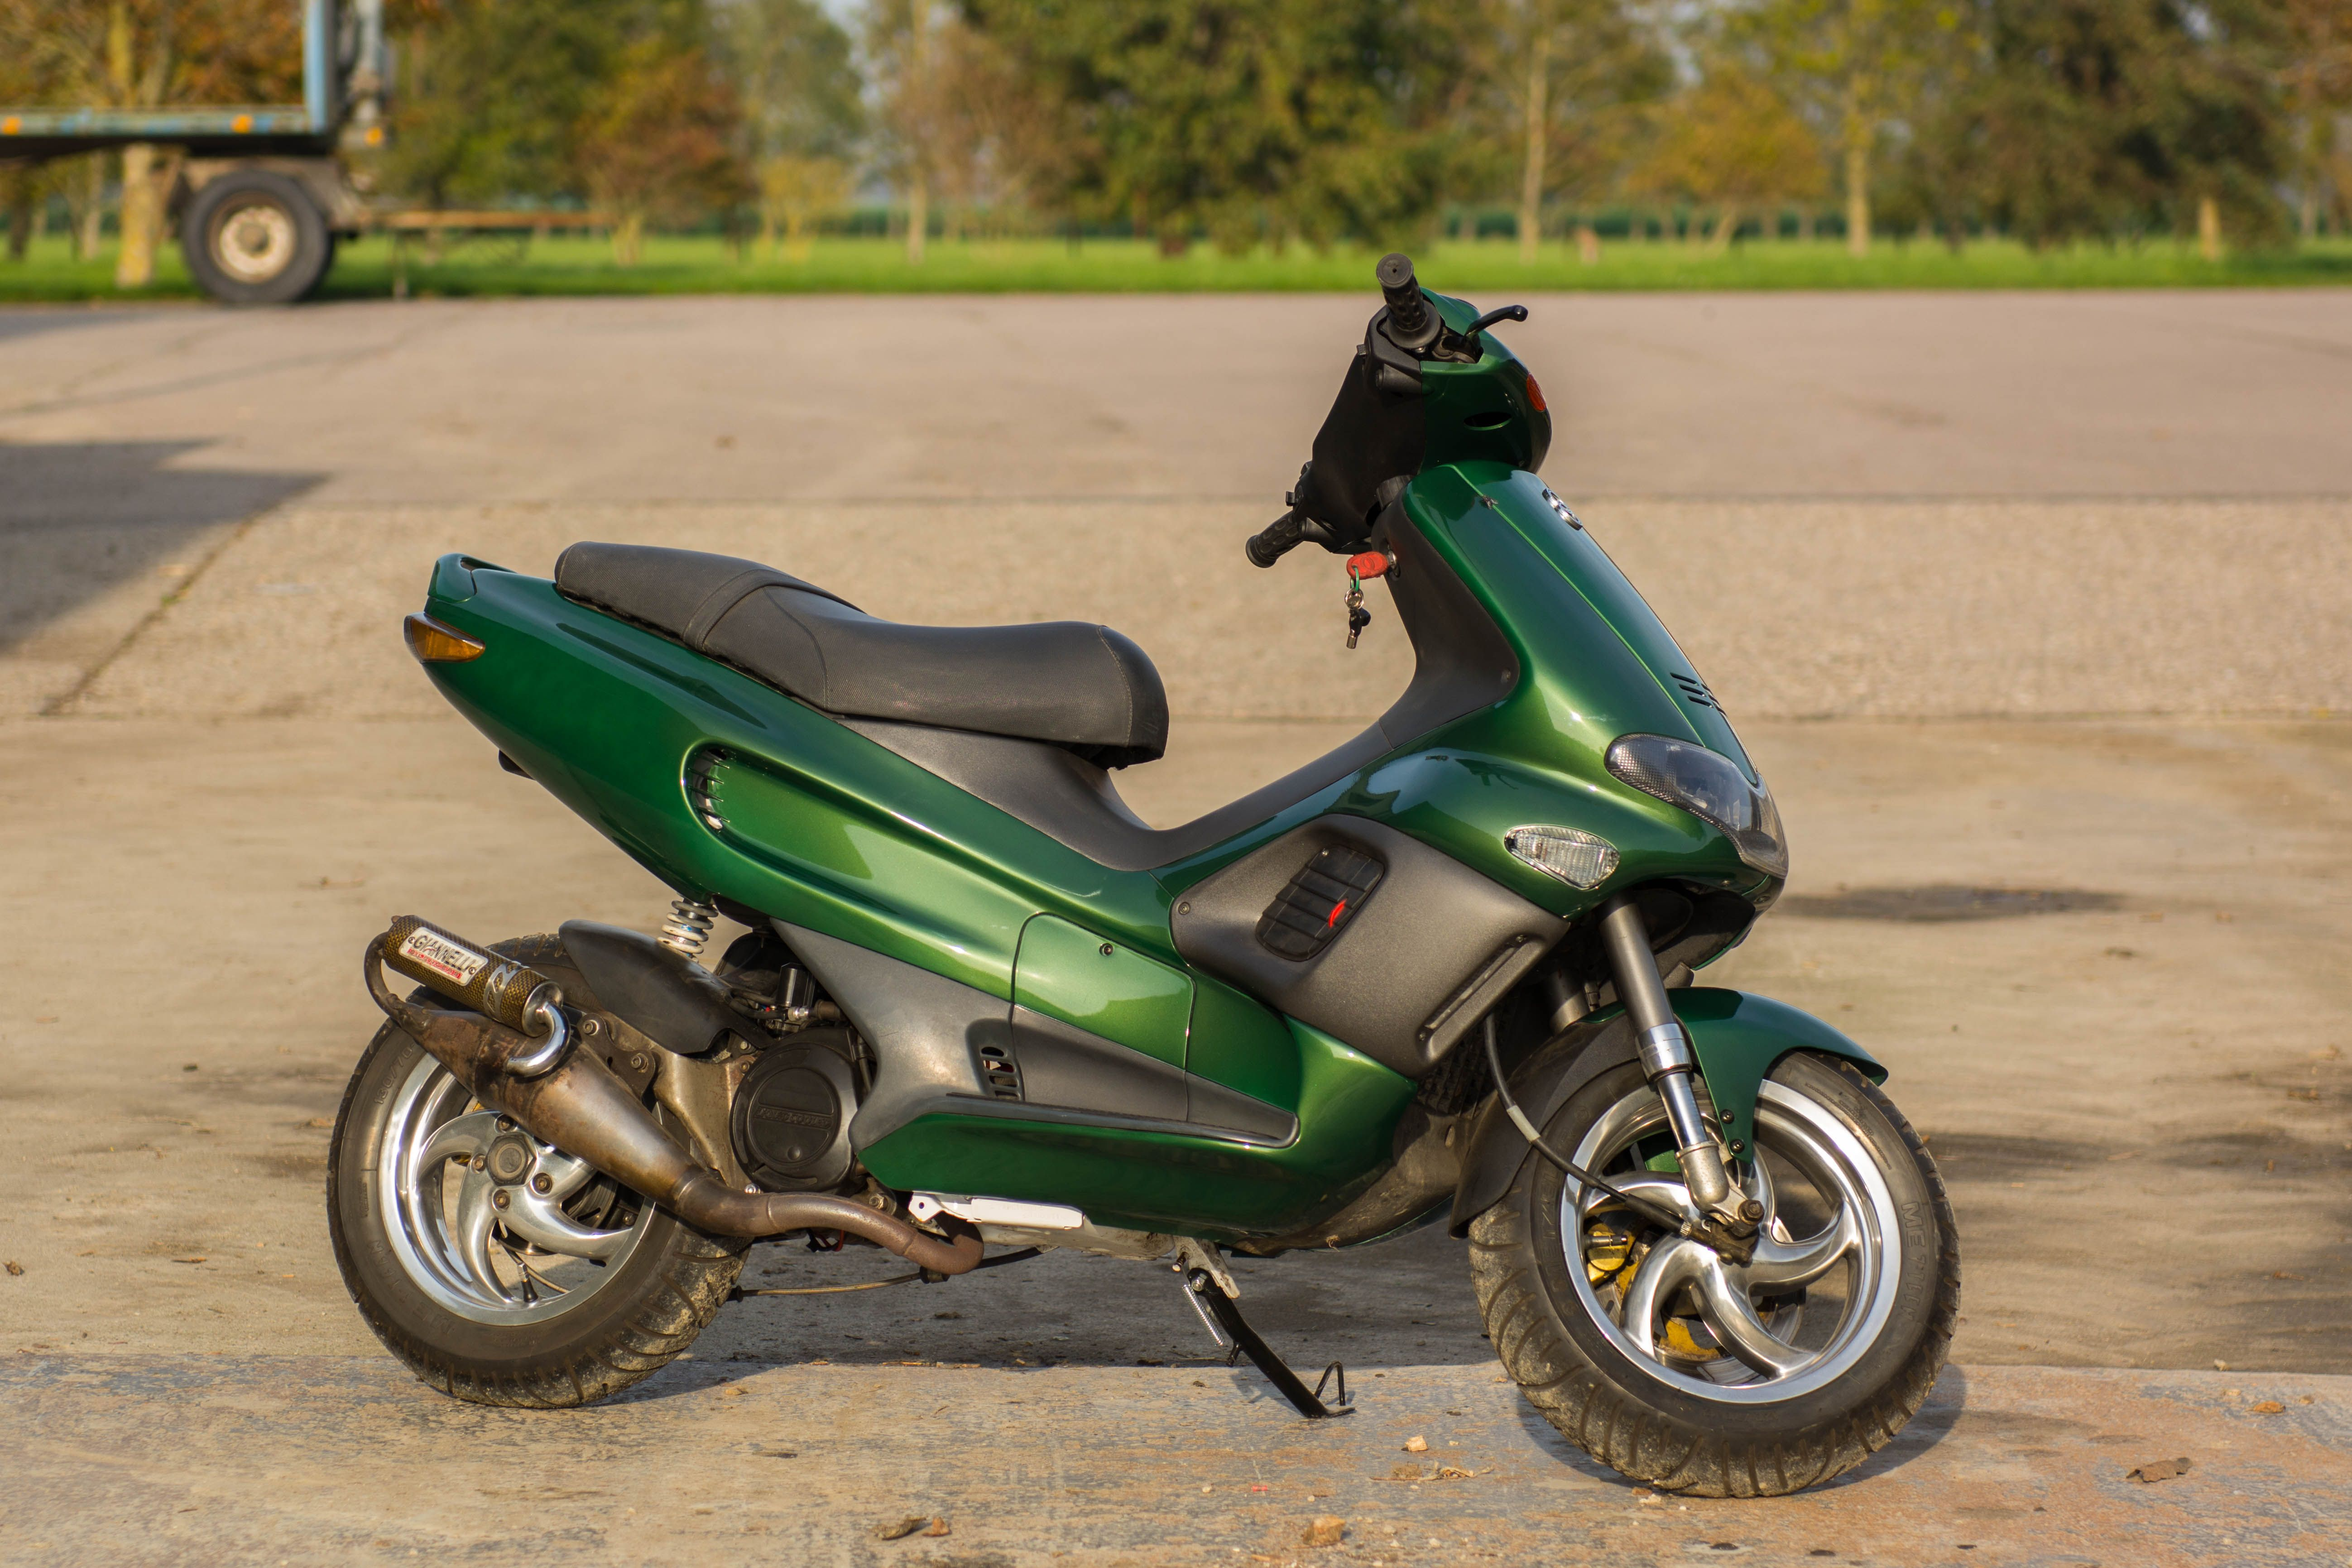 Gilera Runner Sp Moped Motorcycle Vehicles